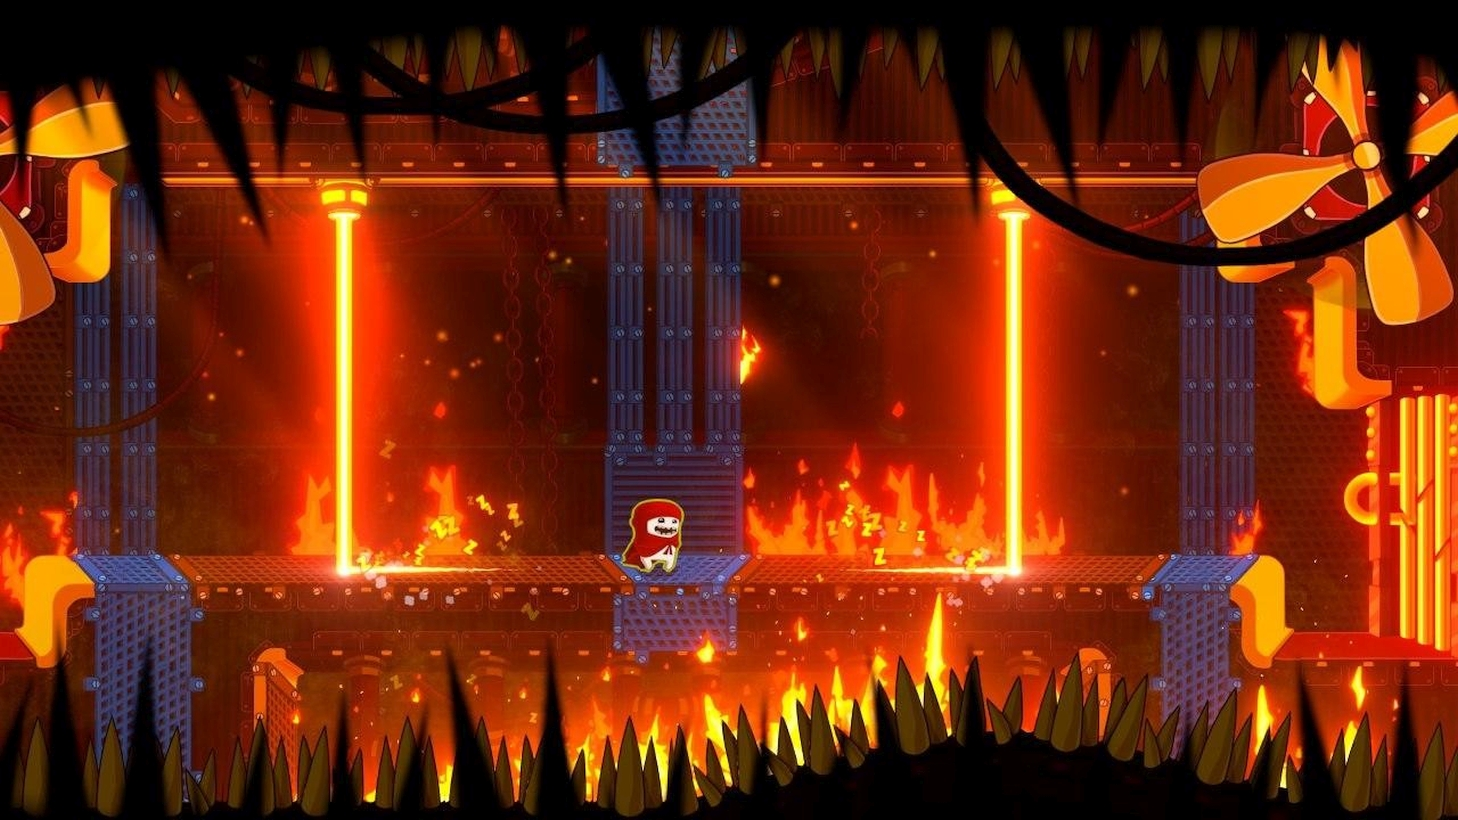 Find The Missing Socks In A Cursed Washing Machine In The Upcoming 2D Platformer Sockventure